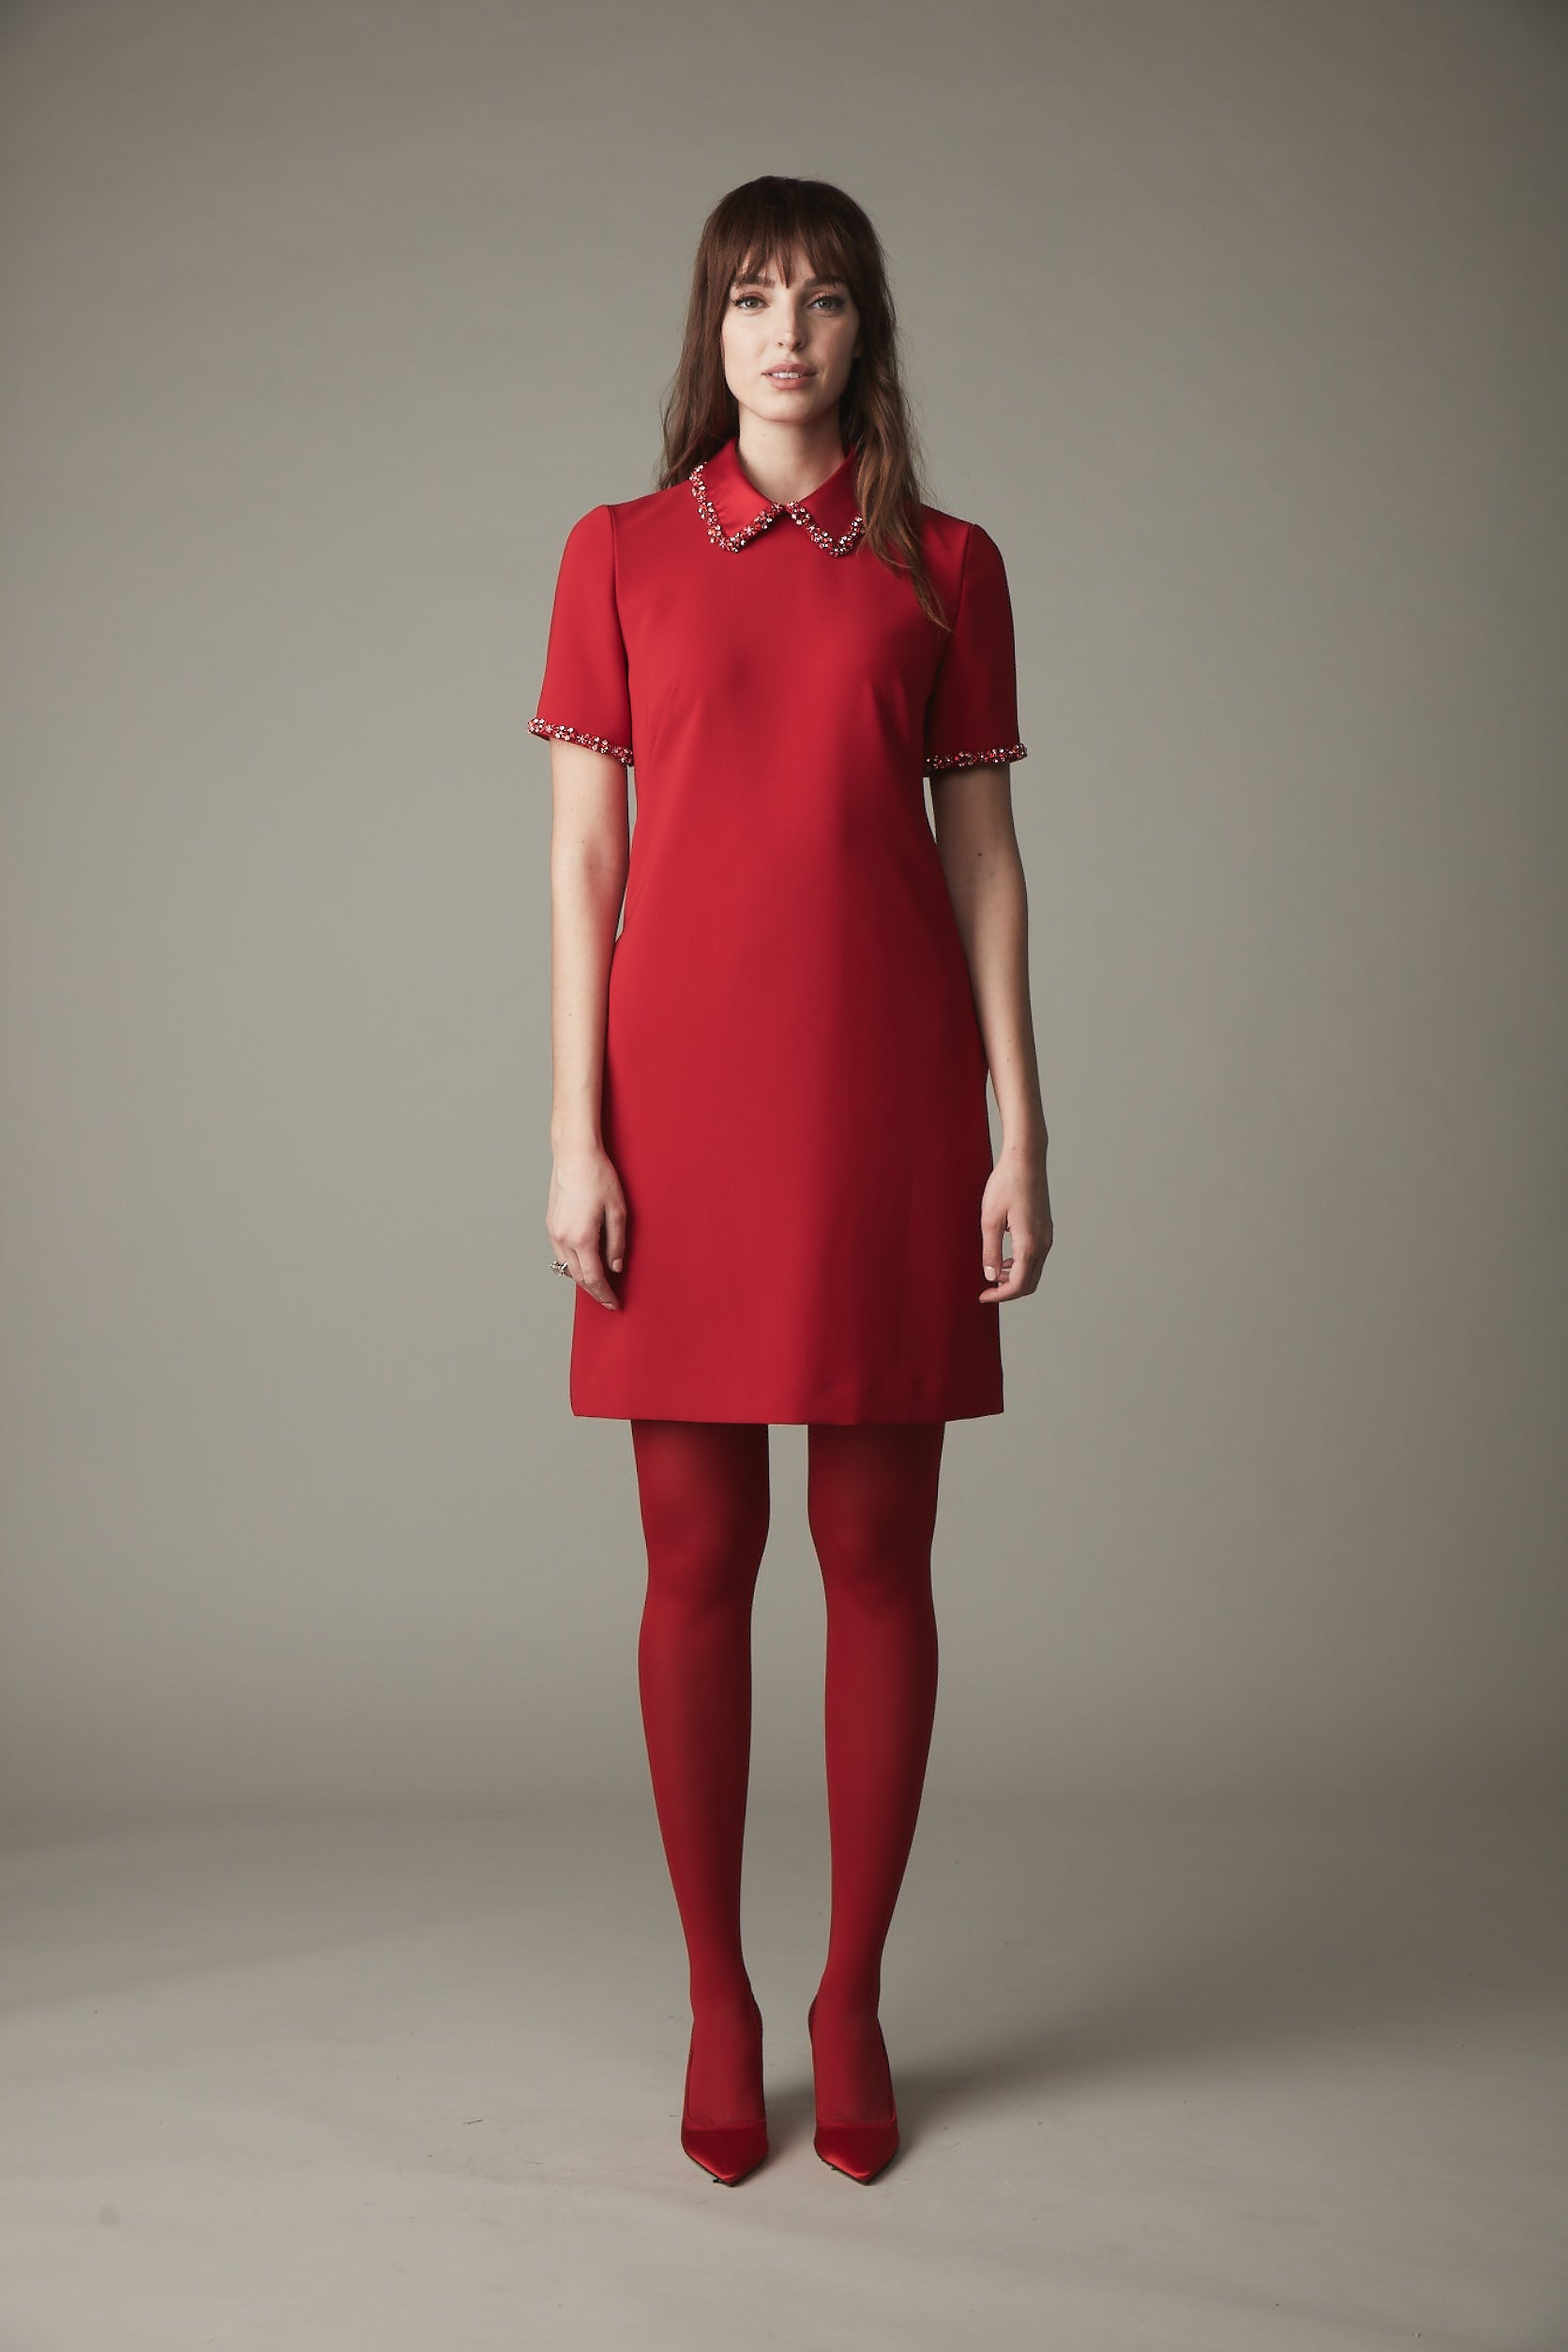 A-Line Jewel Collar Dress - Ruby Red